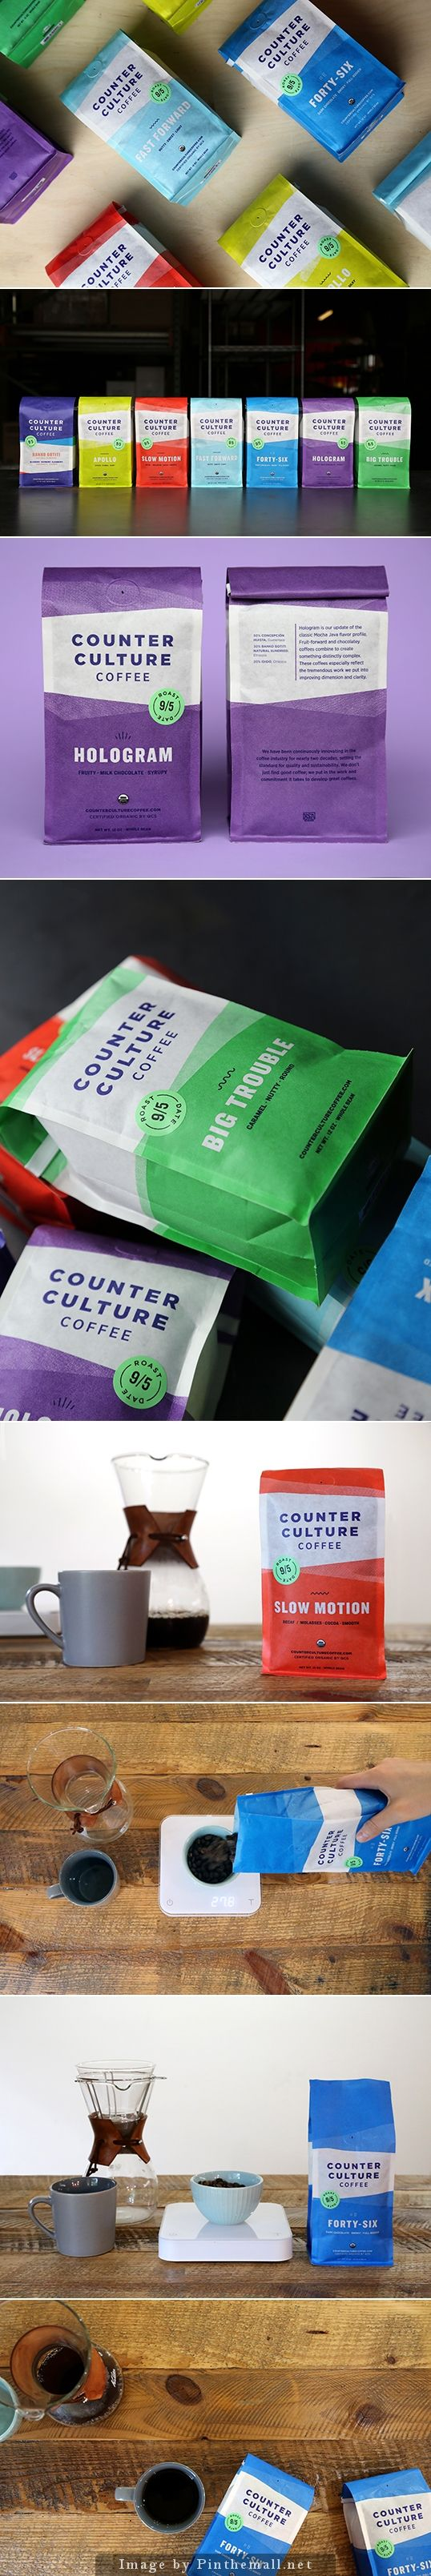 Counter Culture Coffee. What's you favorite color? via @ng_johnson #packaging #design #coffee